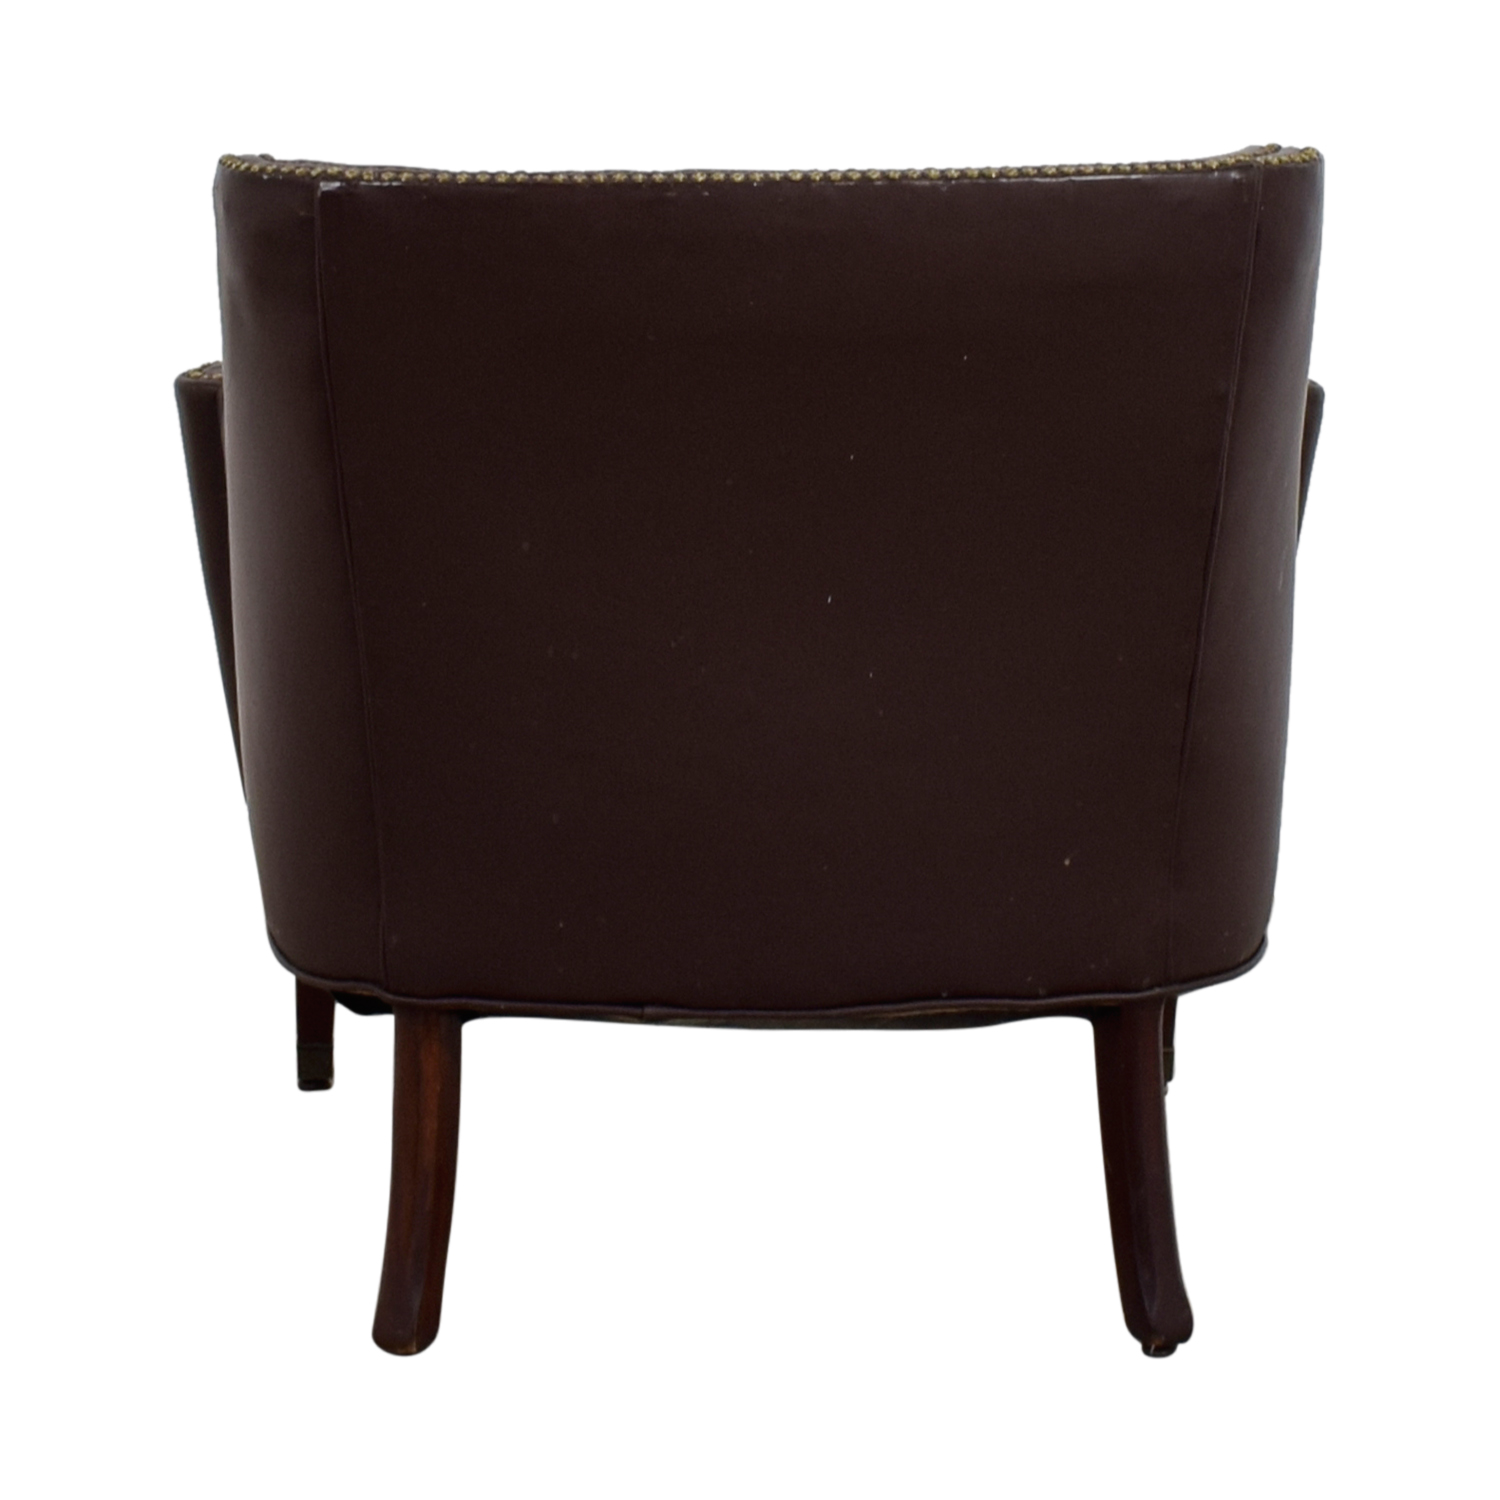 Pier 1 Imports Pier 1 Imports Brown Leather Nailhead Side Chair Chairs